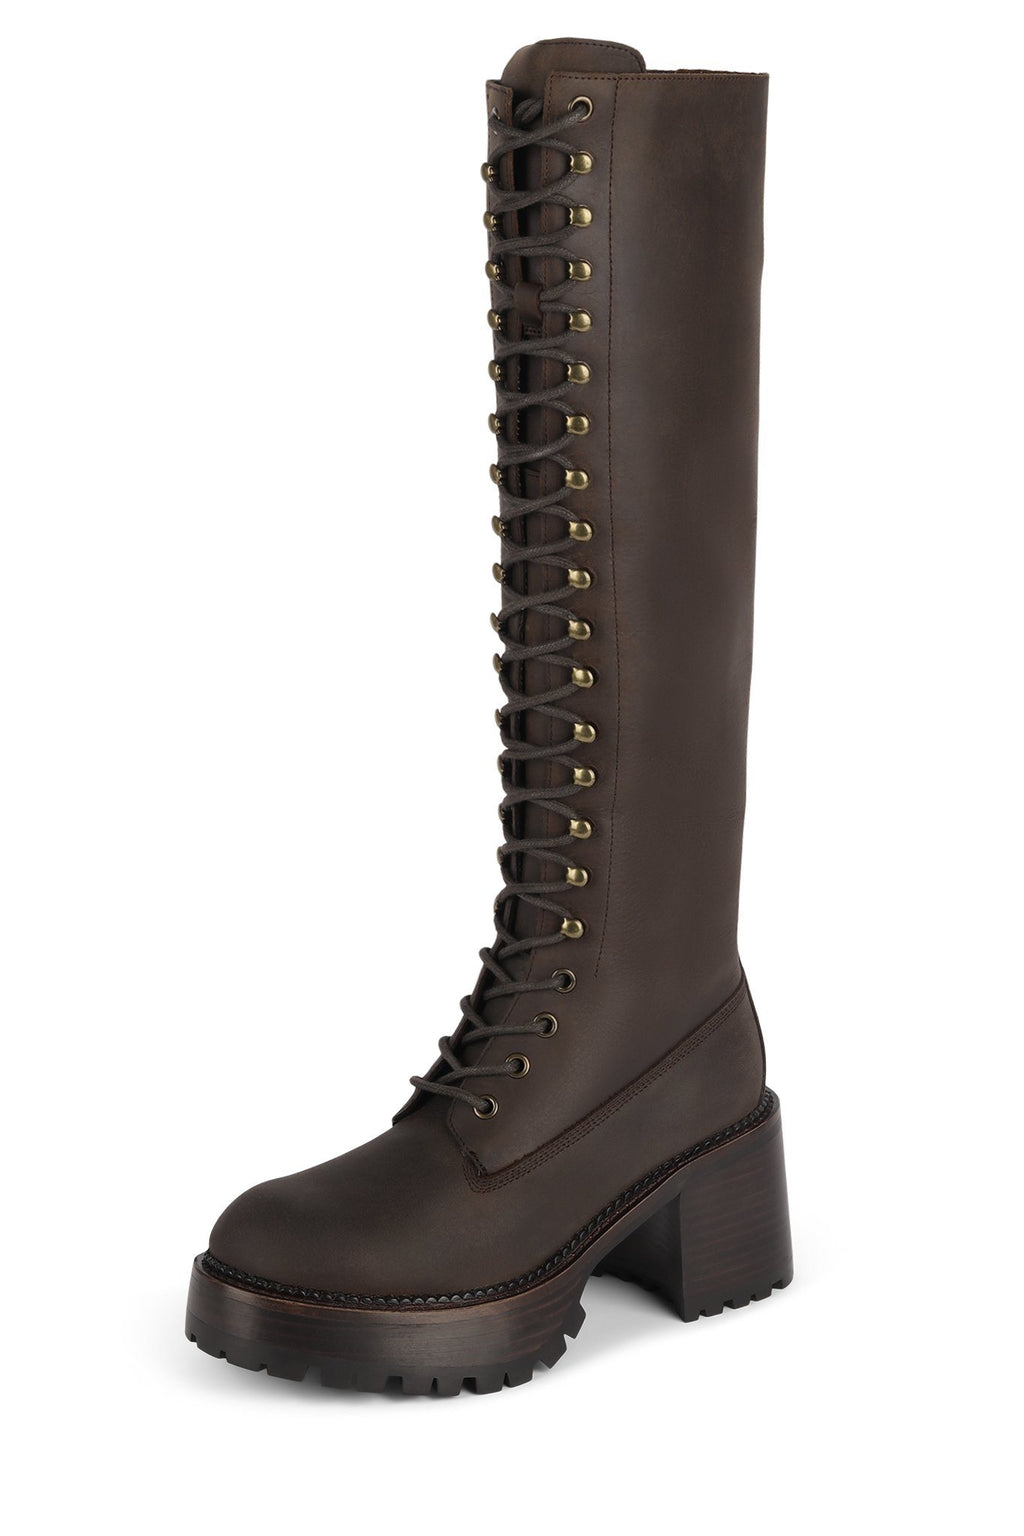 LOCUST-KH Knee-High Boot HS